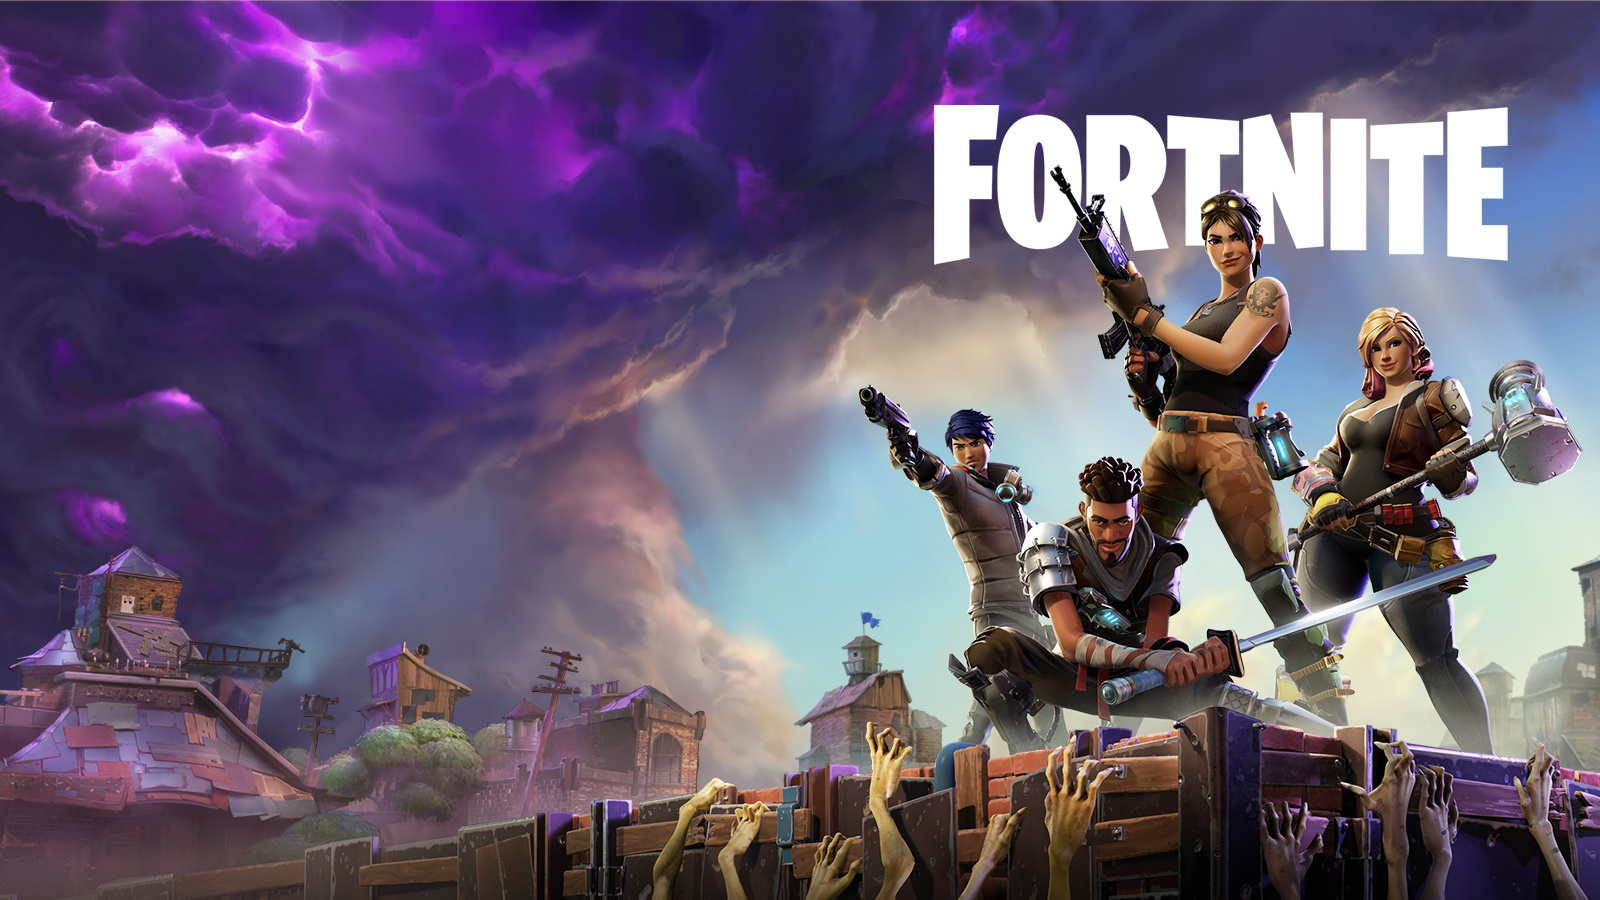 5 Best VPN for Fortnite in 2019 - Improve Your Gaming